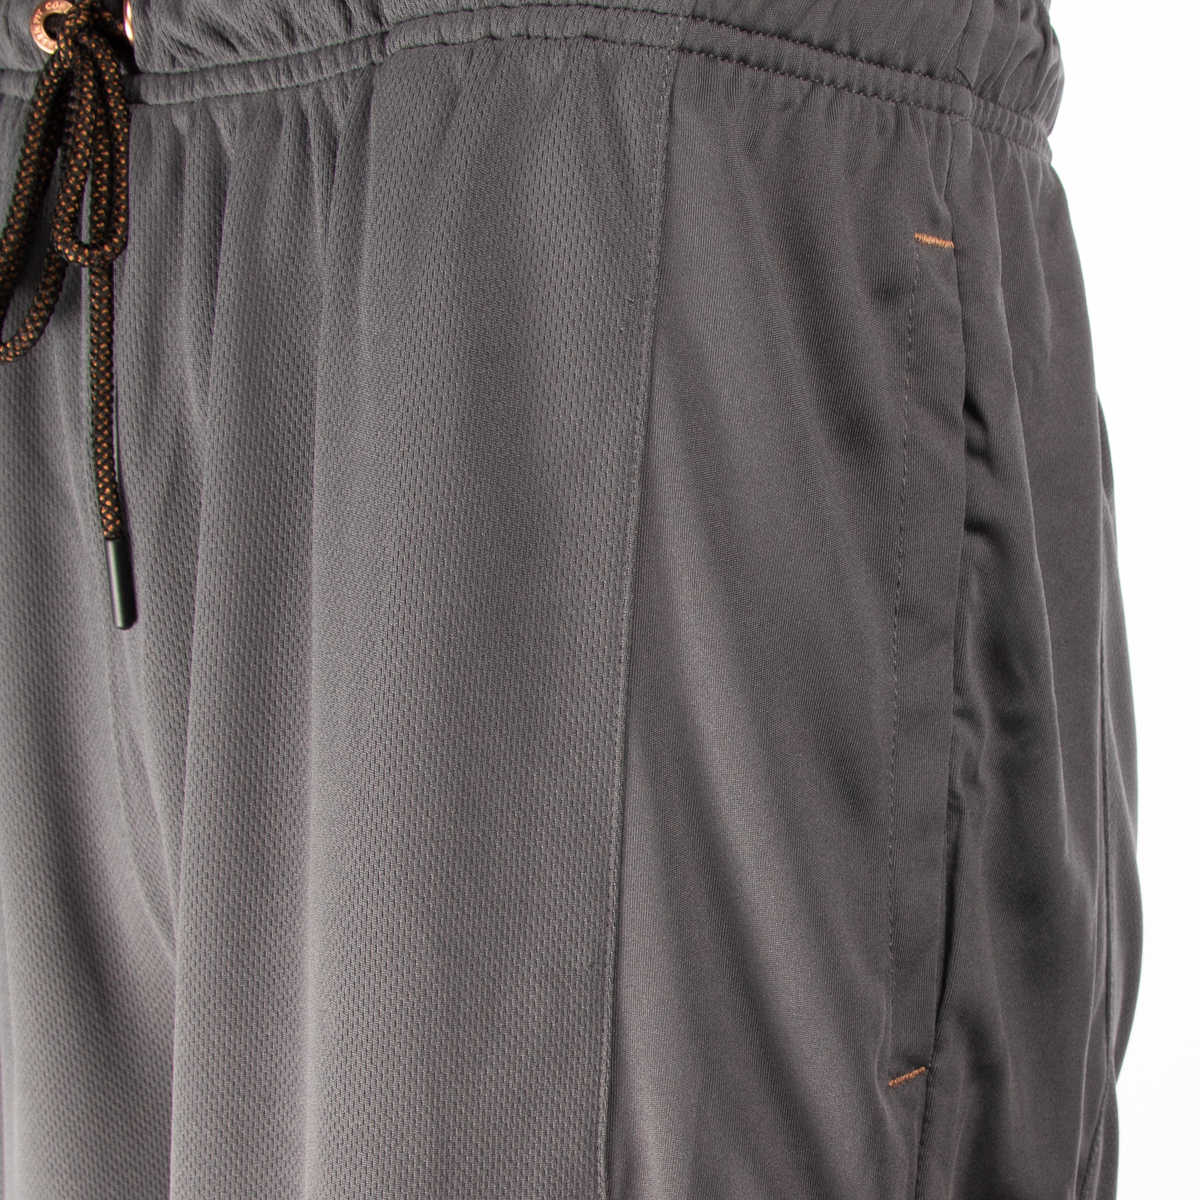 Copper-Fit-Men-s-Big-And-Tall-Athletic-Gym-Shorts-Elastic-Stretch-Waist-Pockets thumbnail 9